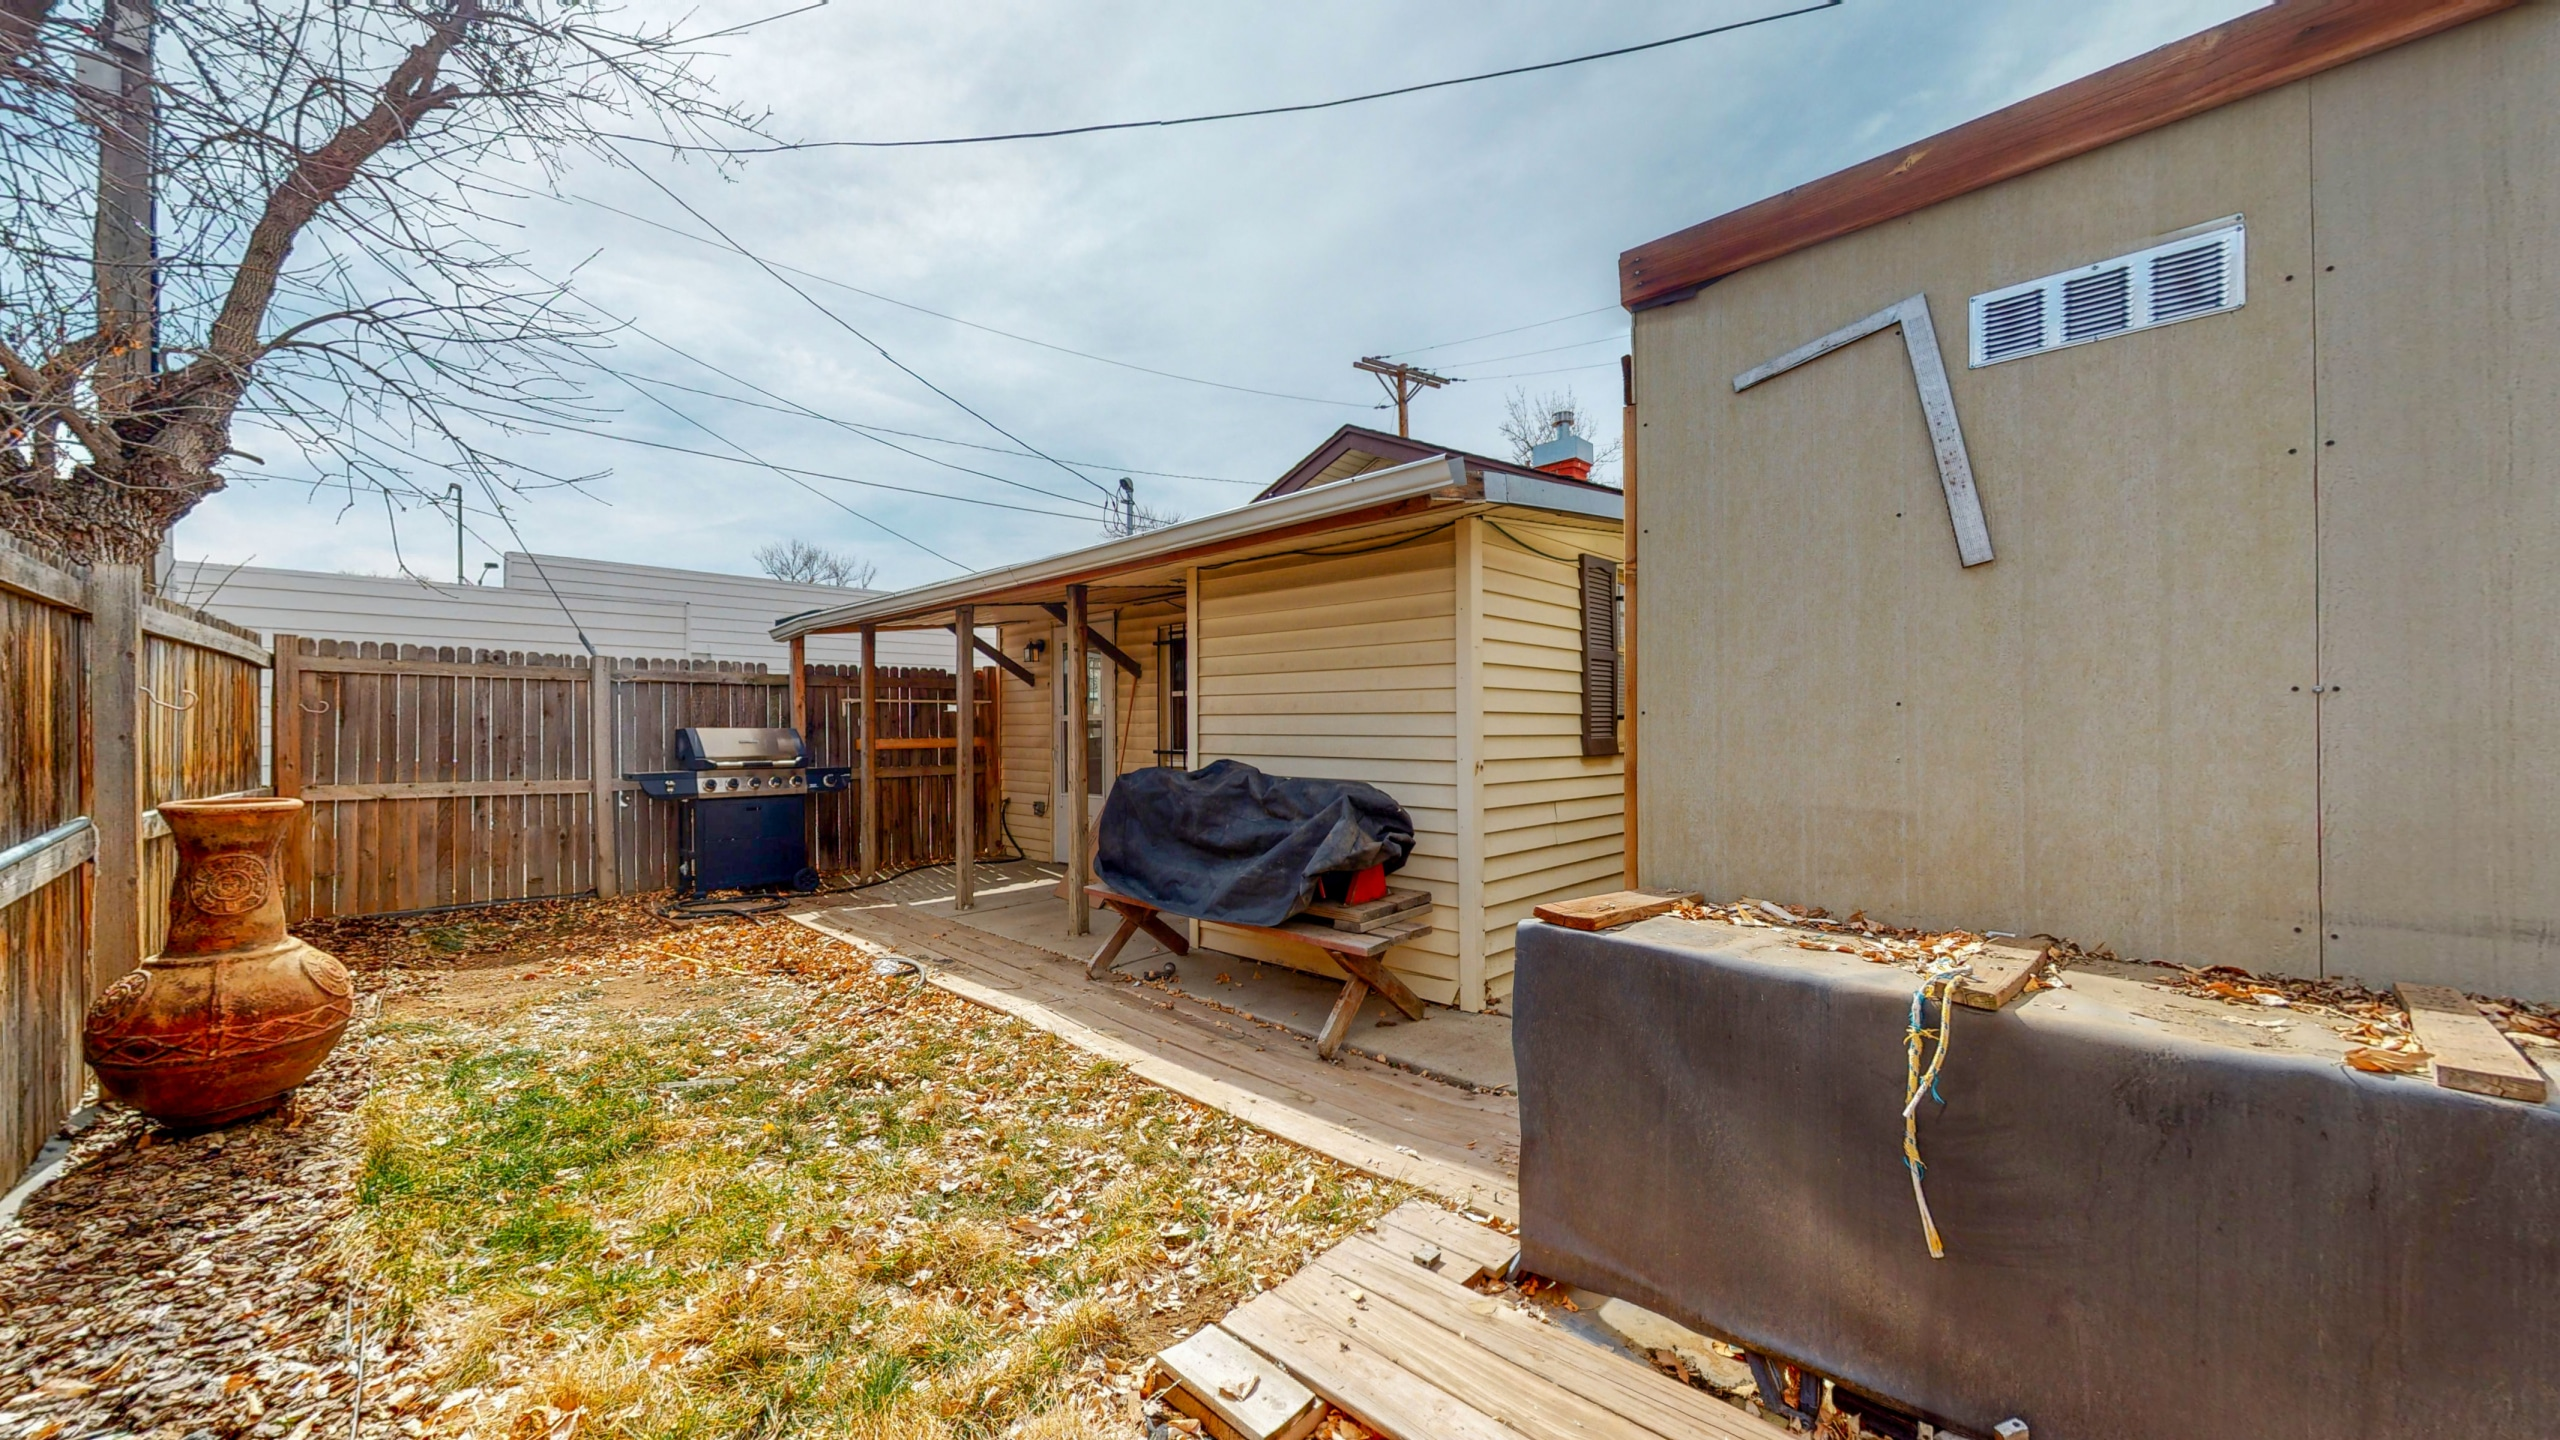 Downtown Brighton Home big backyard with storage shed